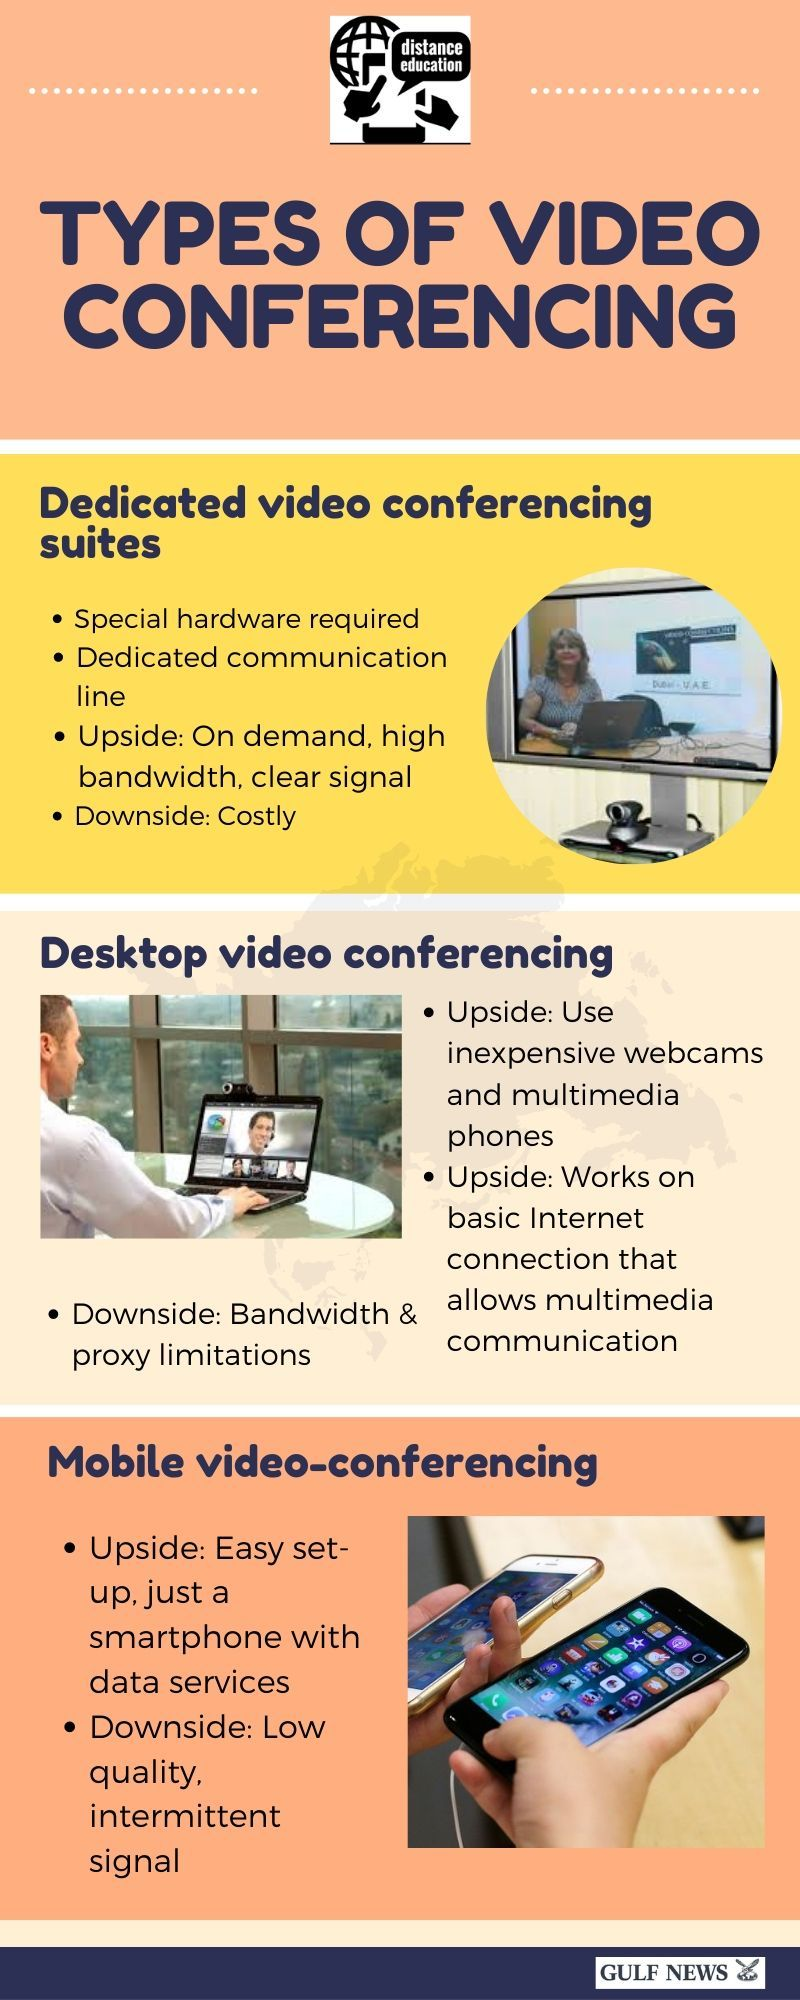 Video conferencing distance learning